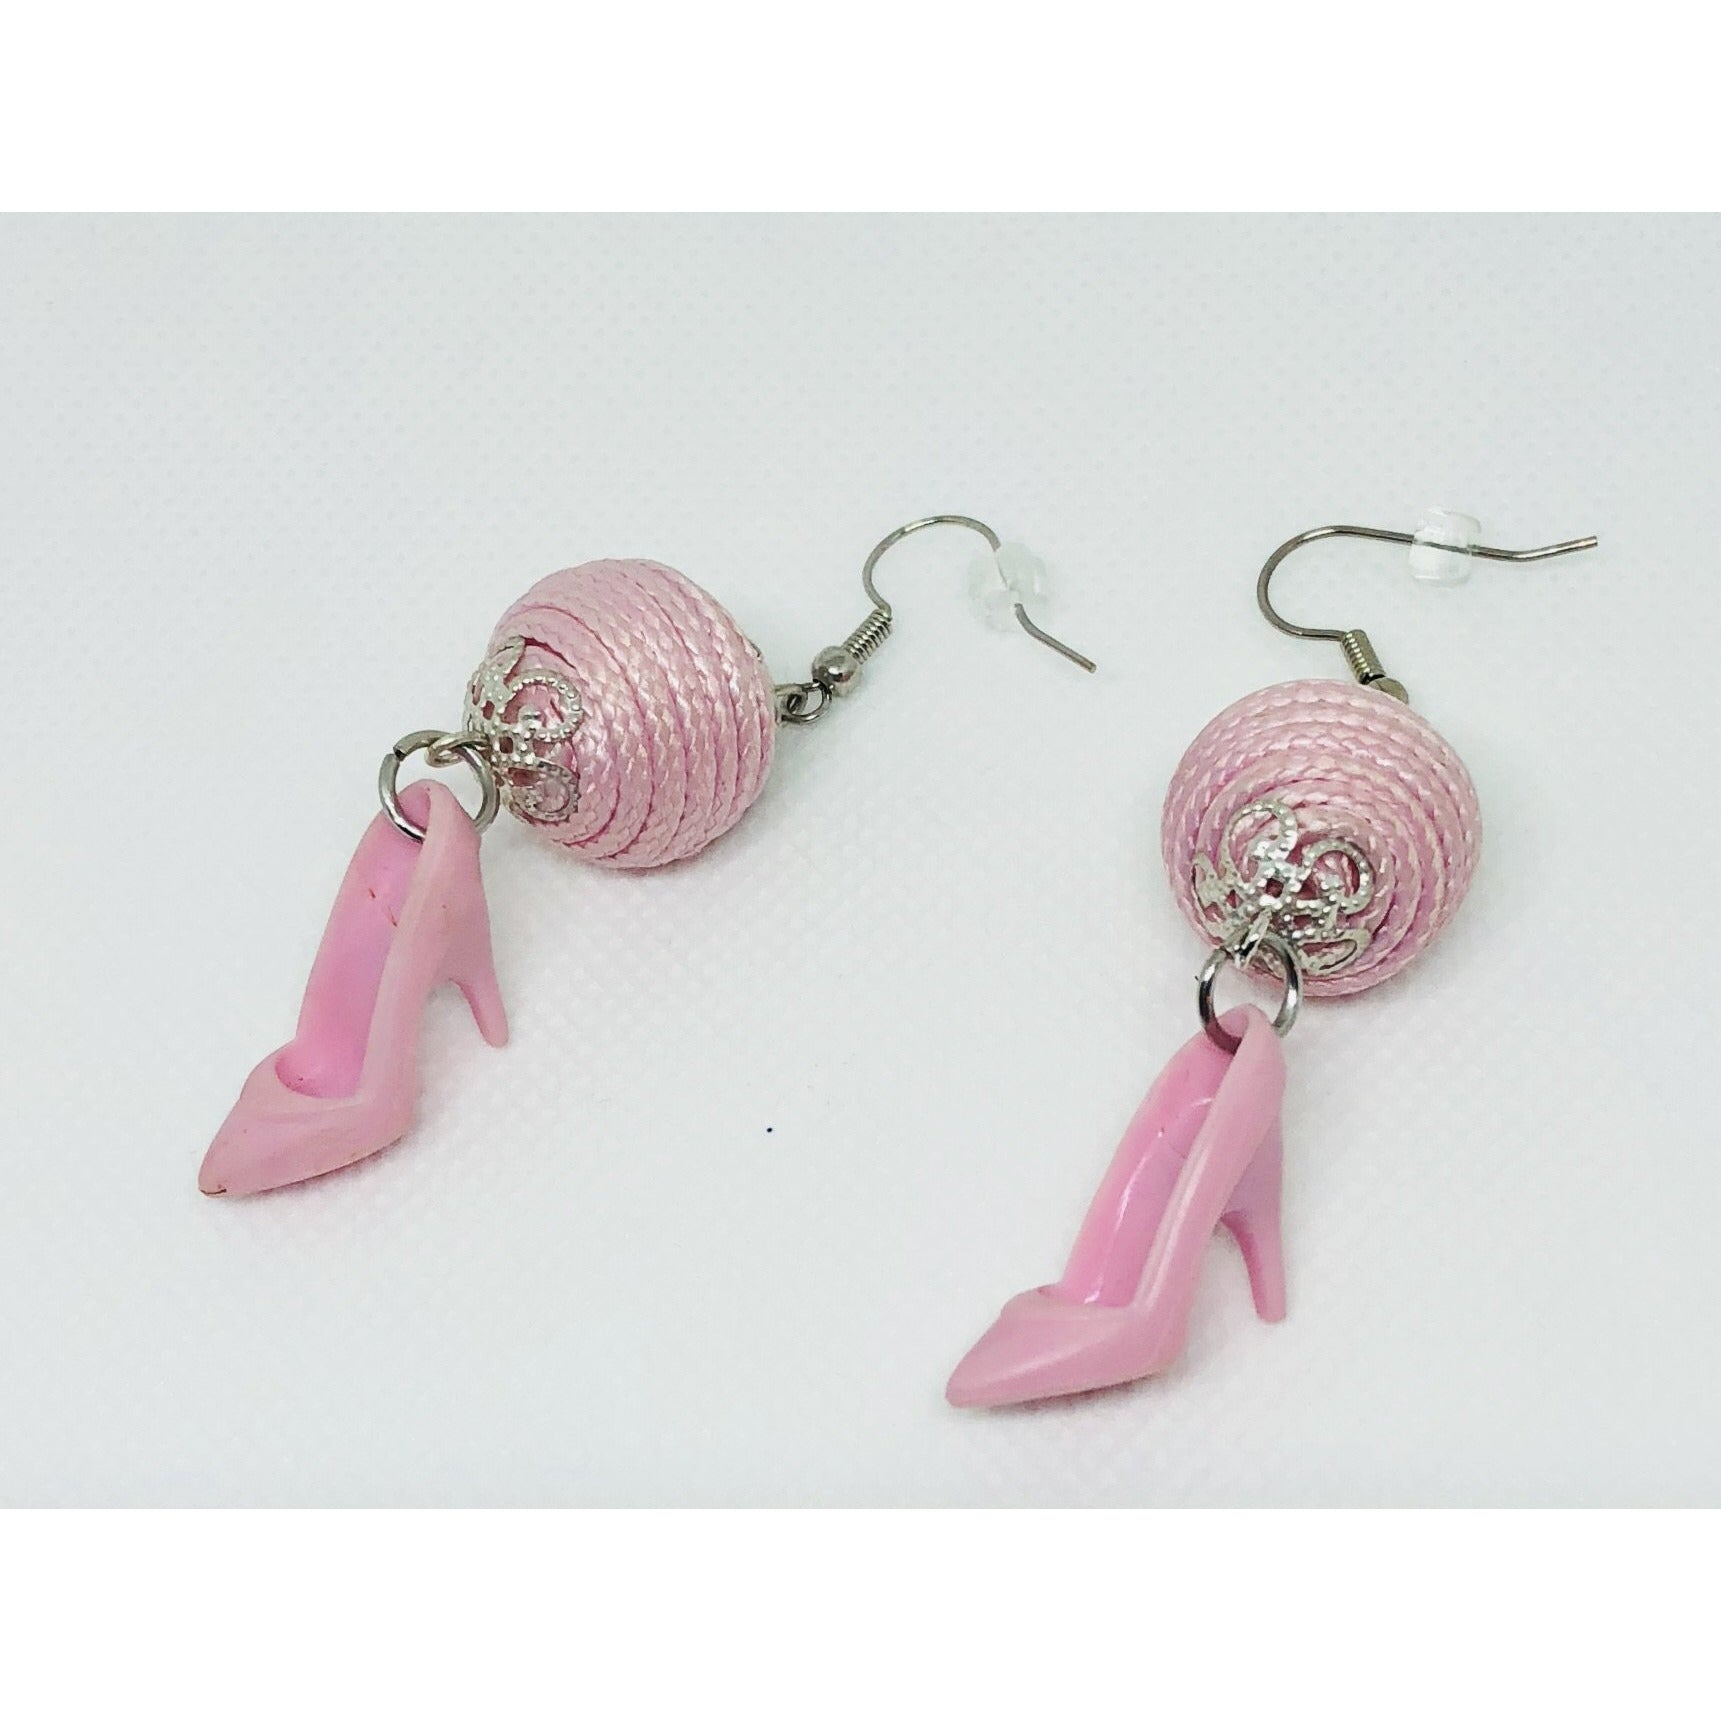 Barbie Inspired high heel earrings